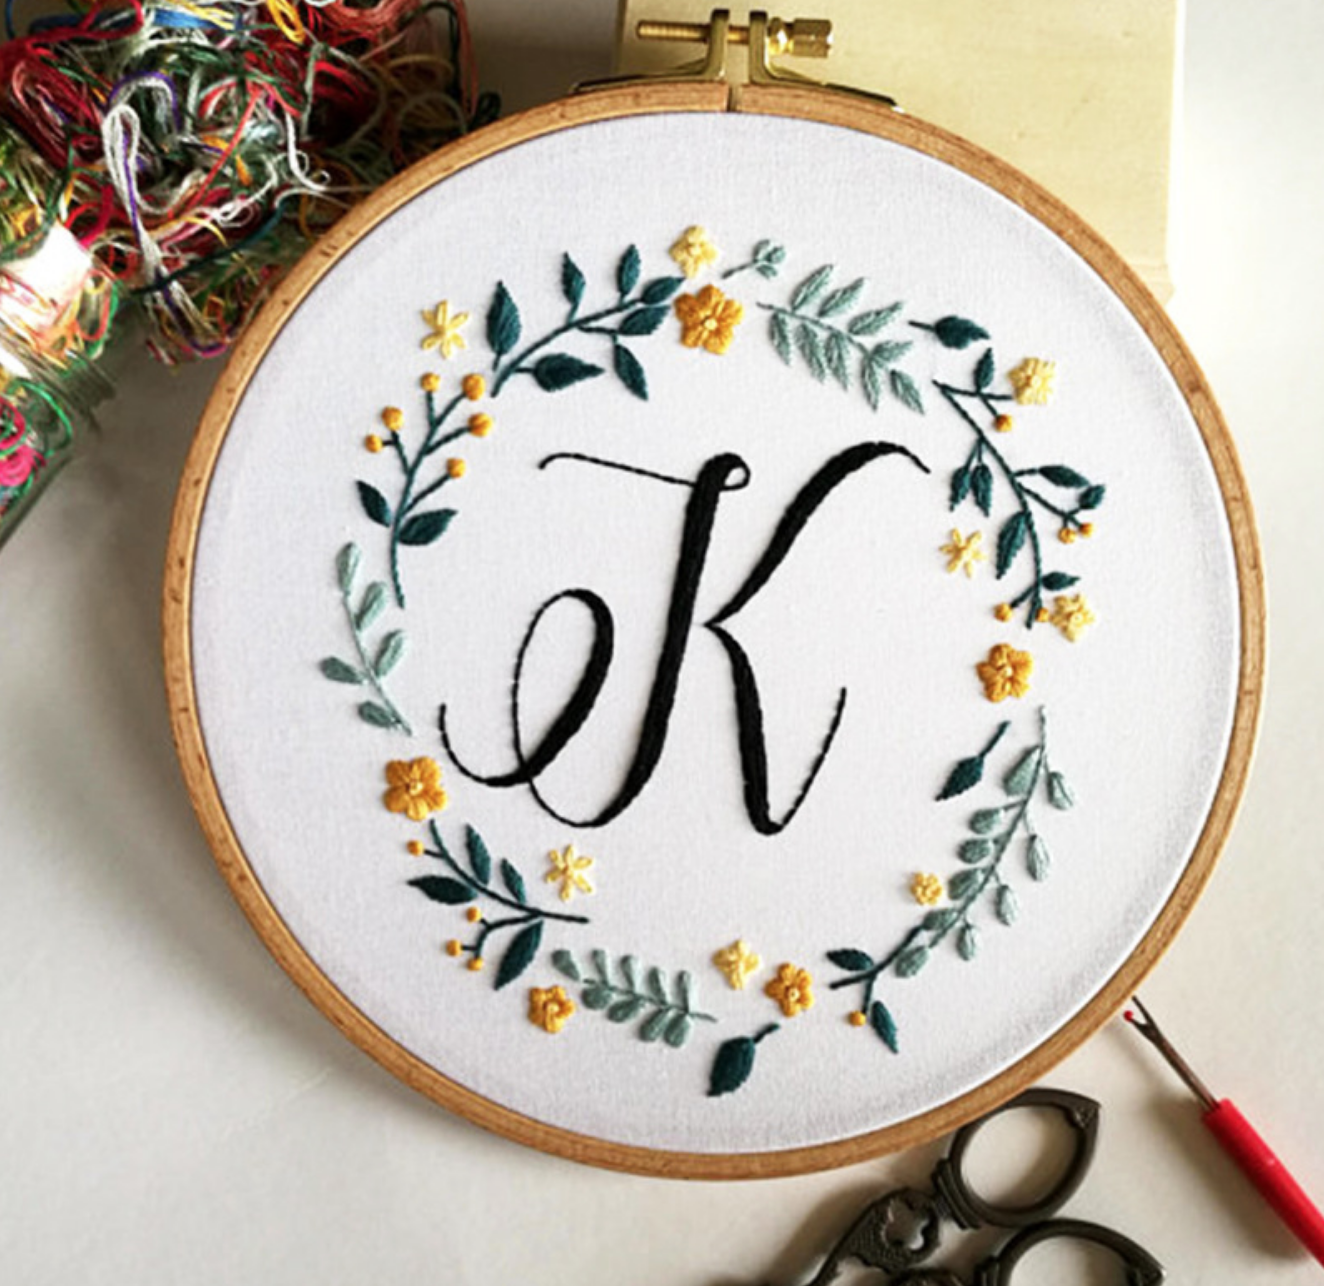 K Embroidery